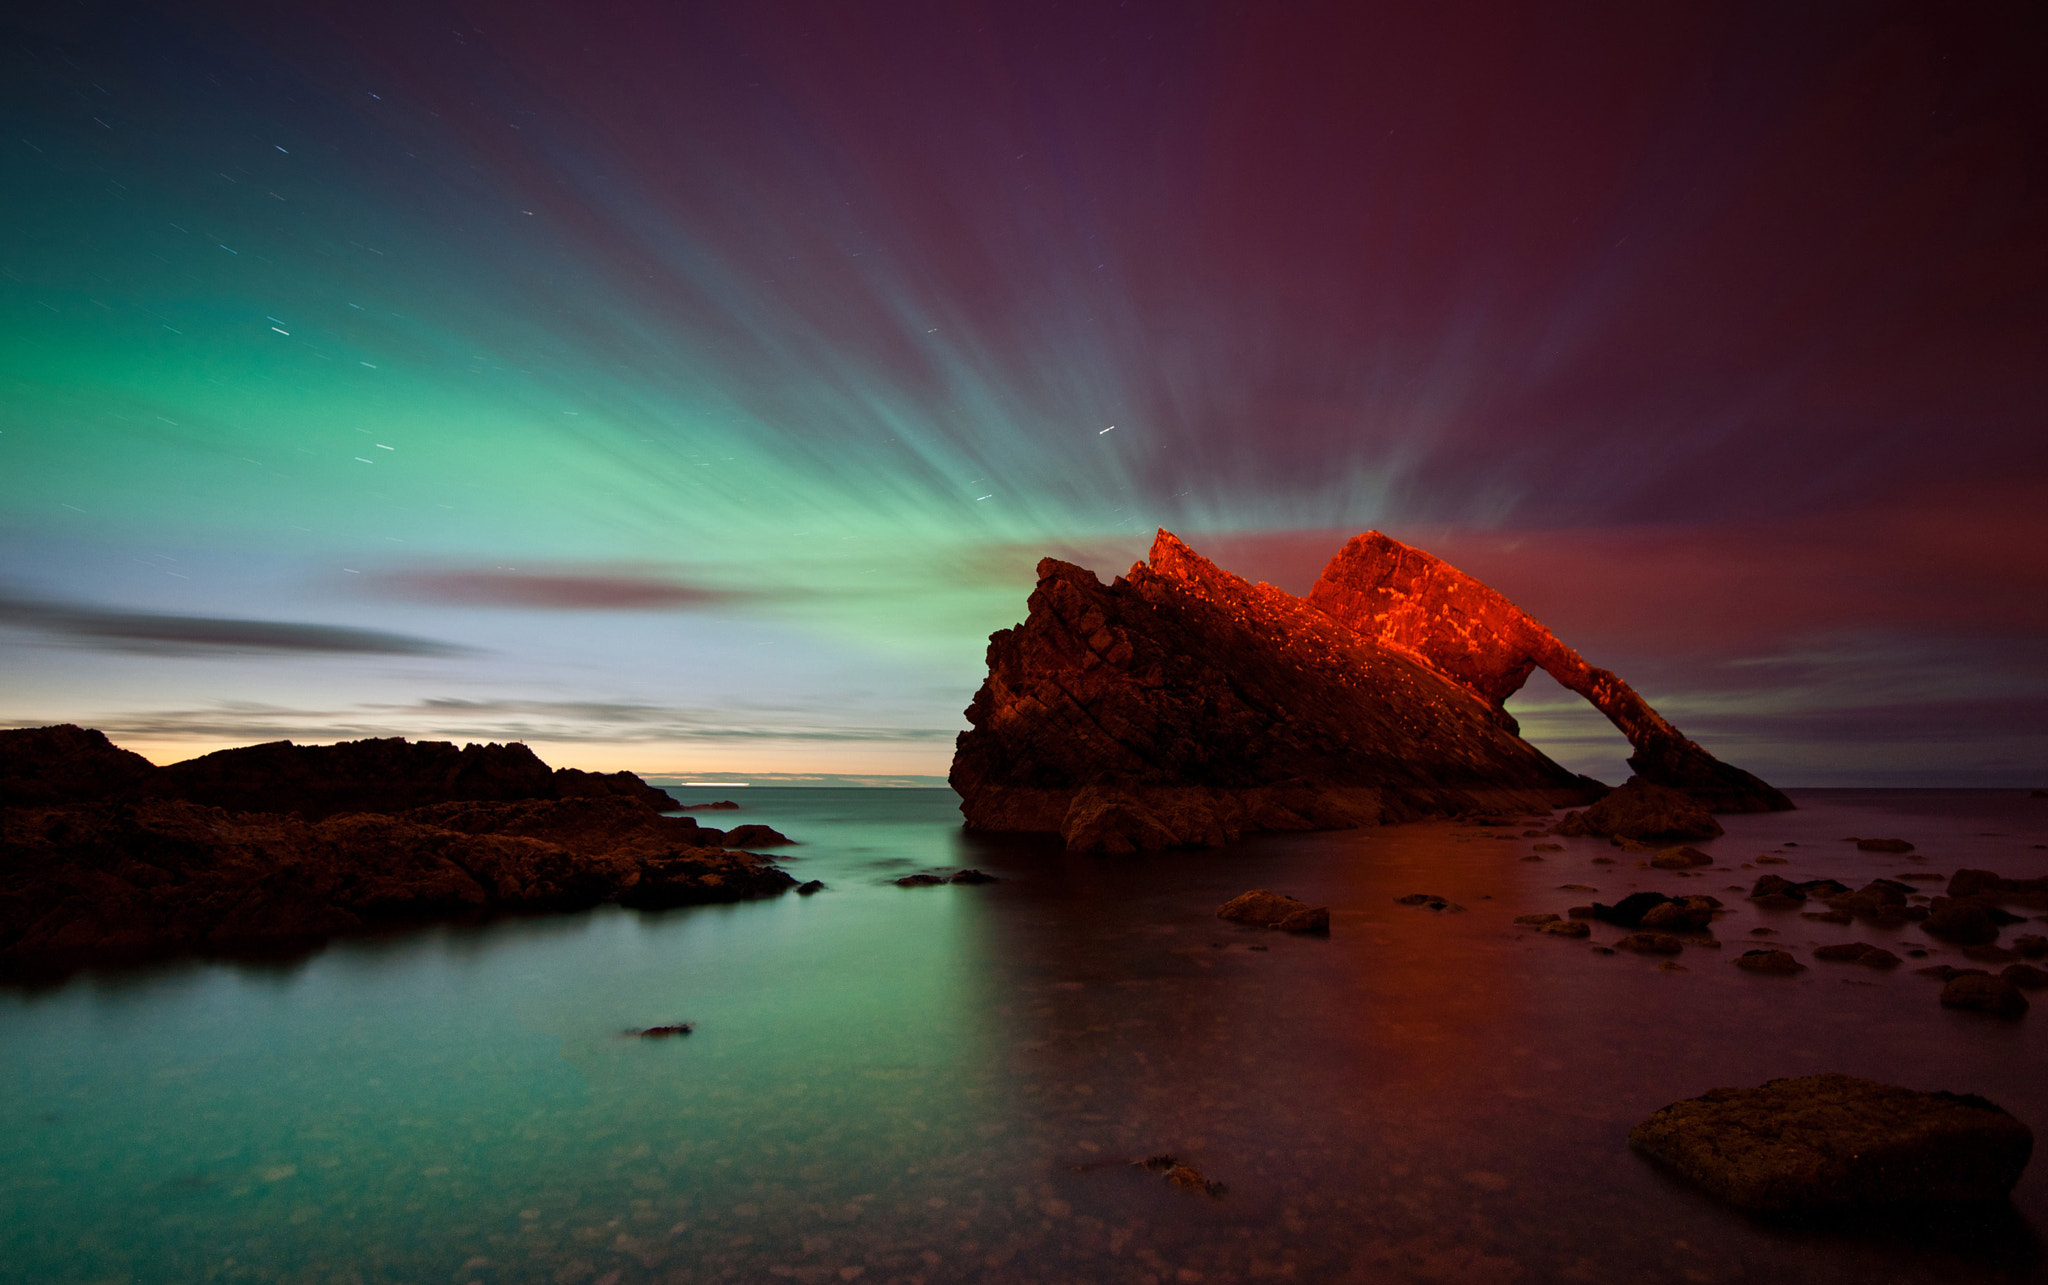 Photograph Bow Fiddle aurora by Kenny Muir on 500px